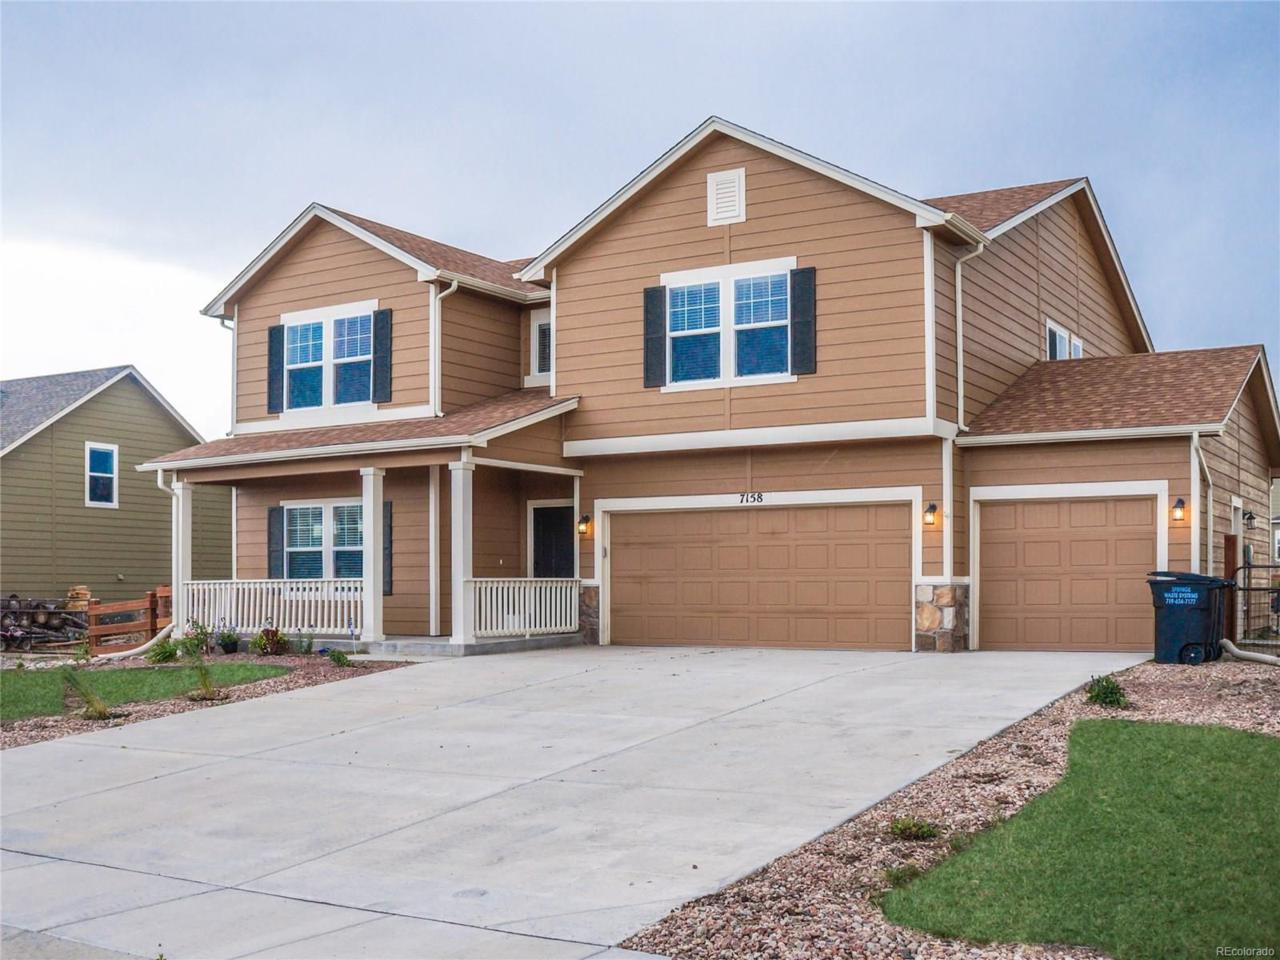 7158 Honeycomb Drive, Peyton, CO 80831 (MLS #7269964) :: 8z Real Estate